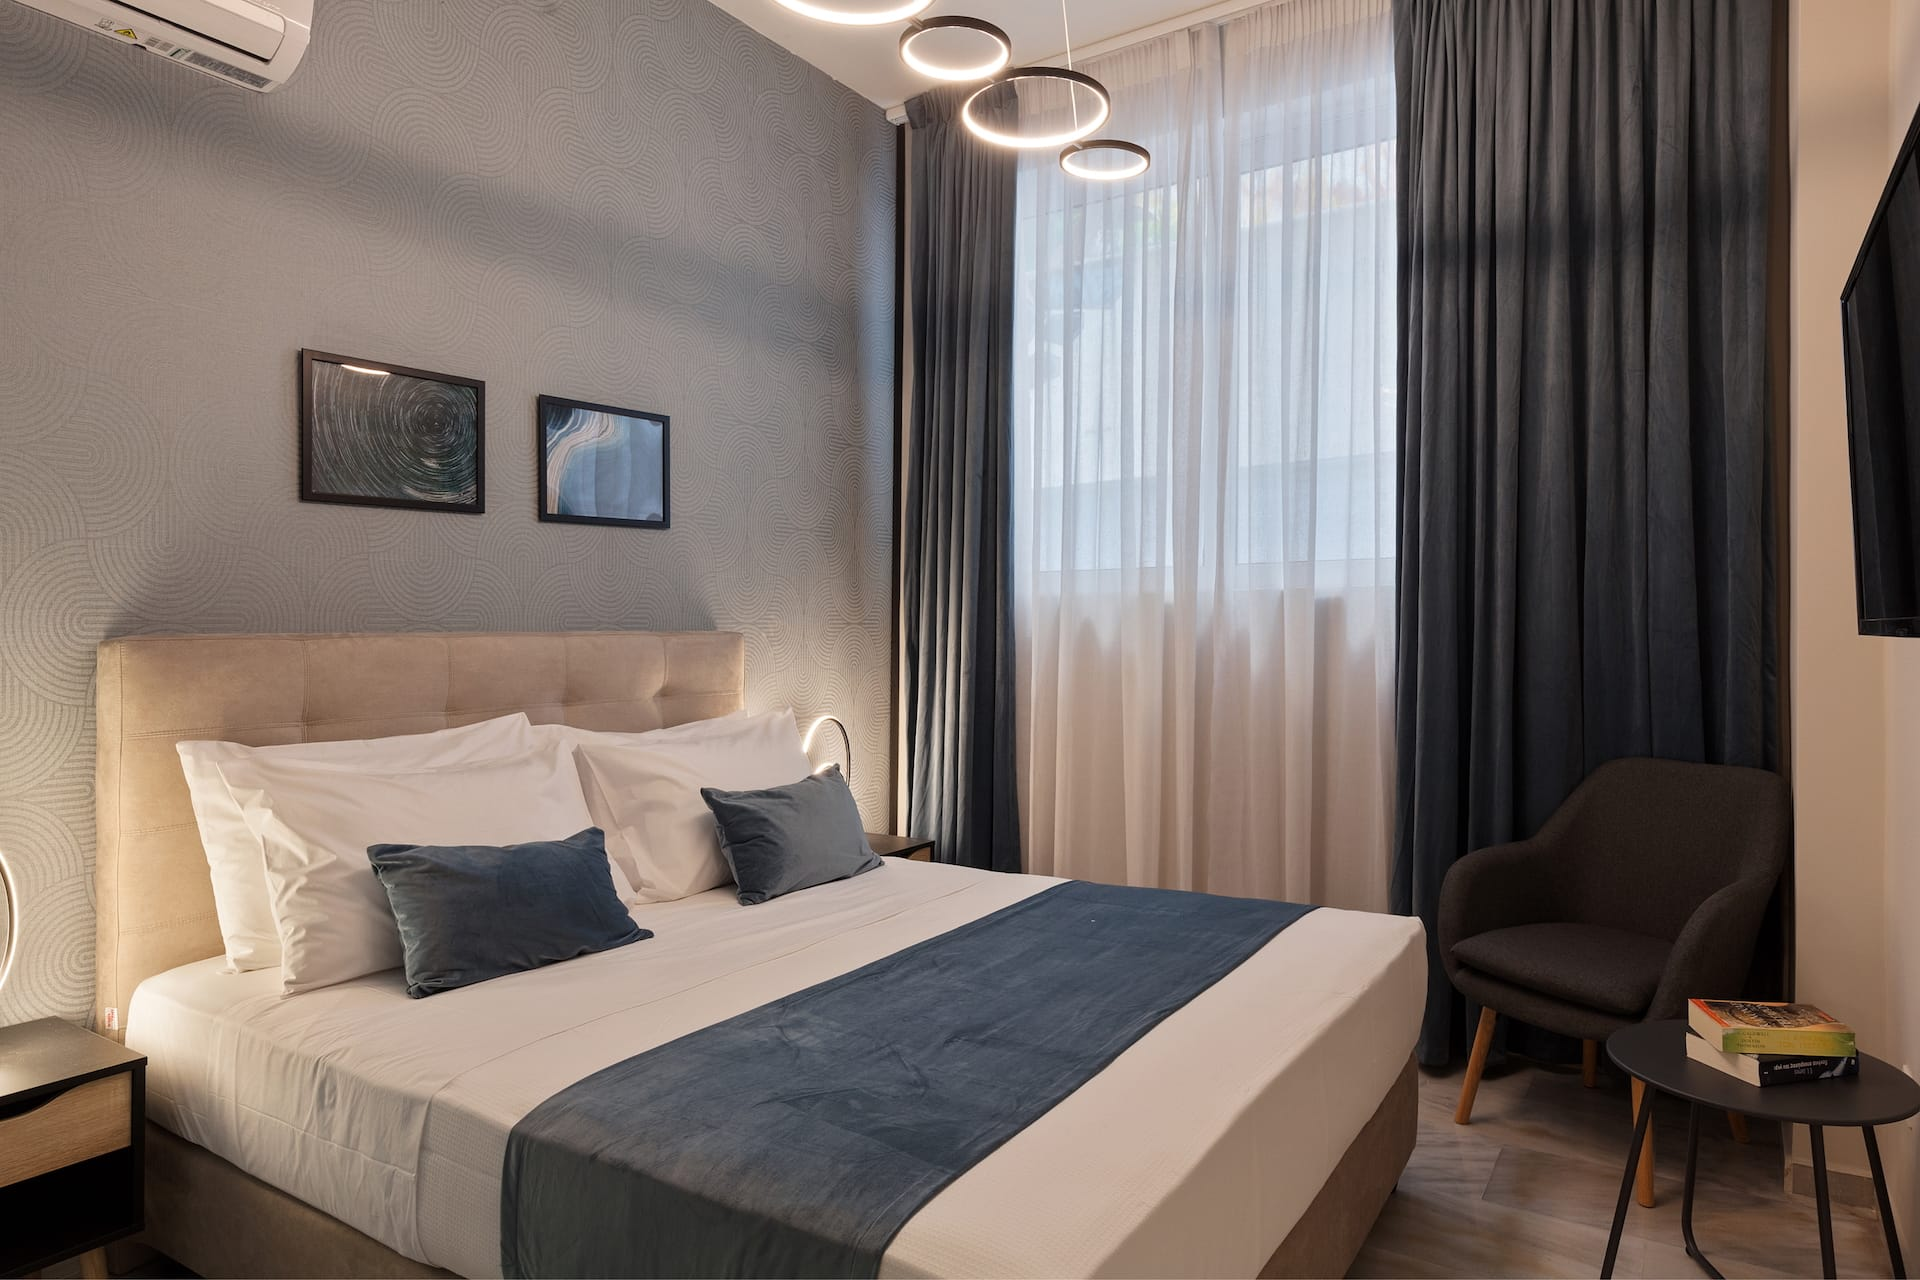 The Economy Double Room of Trendy by Athens Prime Hotels in the center of Athens, Greece.